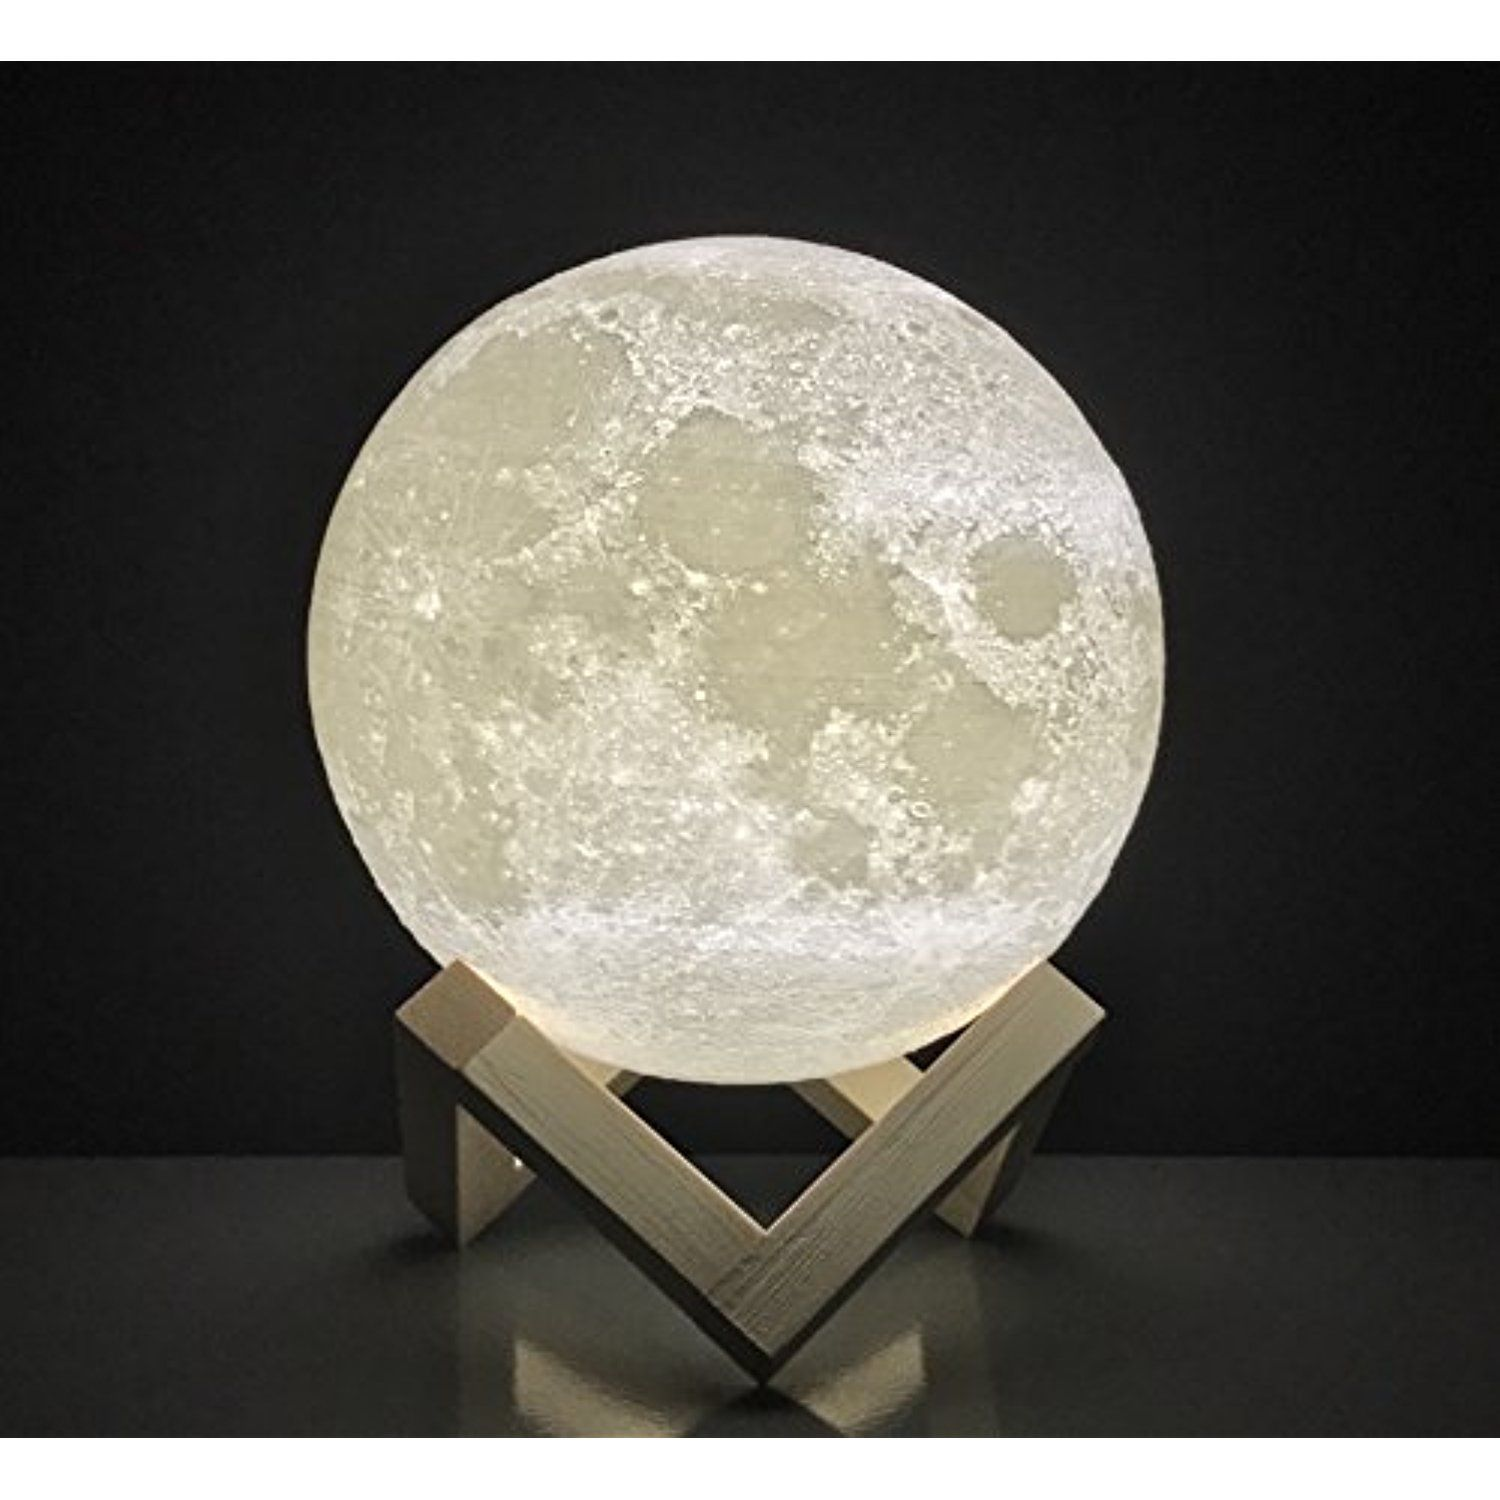 Moon Lamp Round Night Light 3d Printed Free Ebook Dimmable Brightness Touch Sensor Usb Charger Warm Lig Night Light Lighting Ceiling Fans White Light